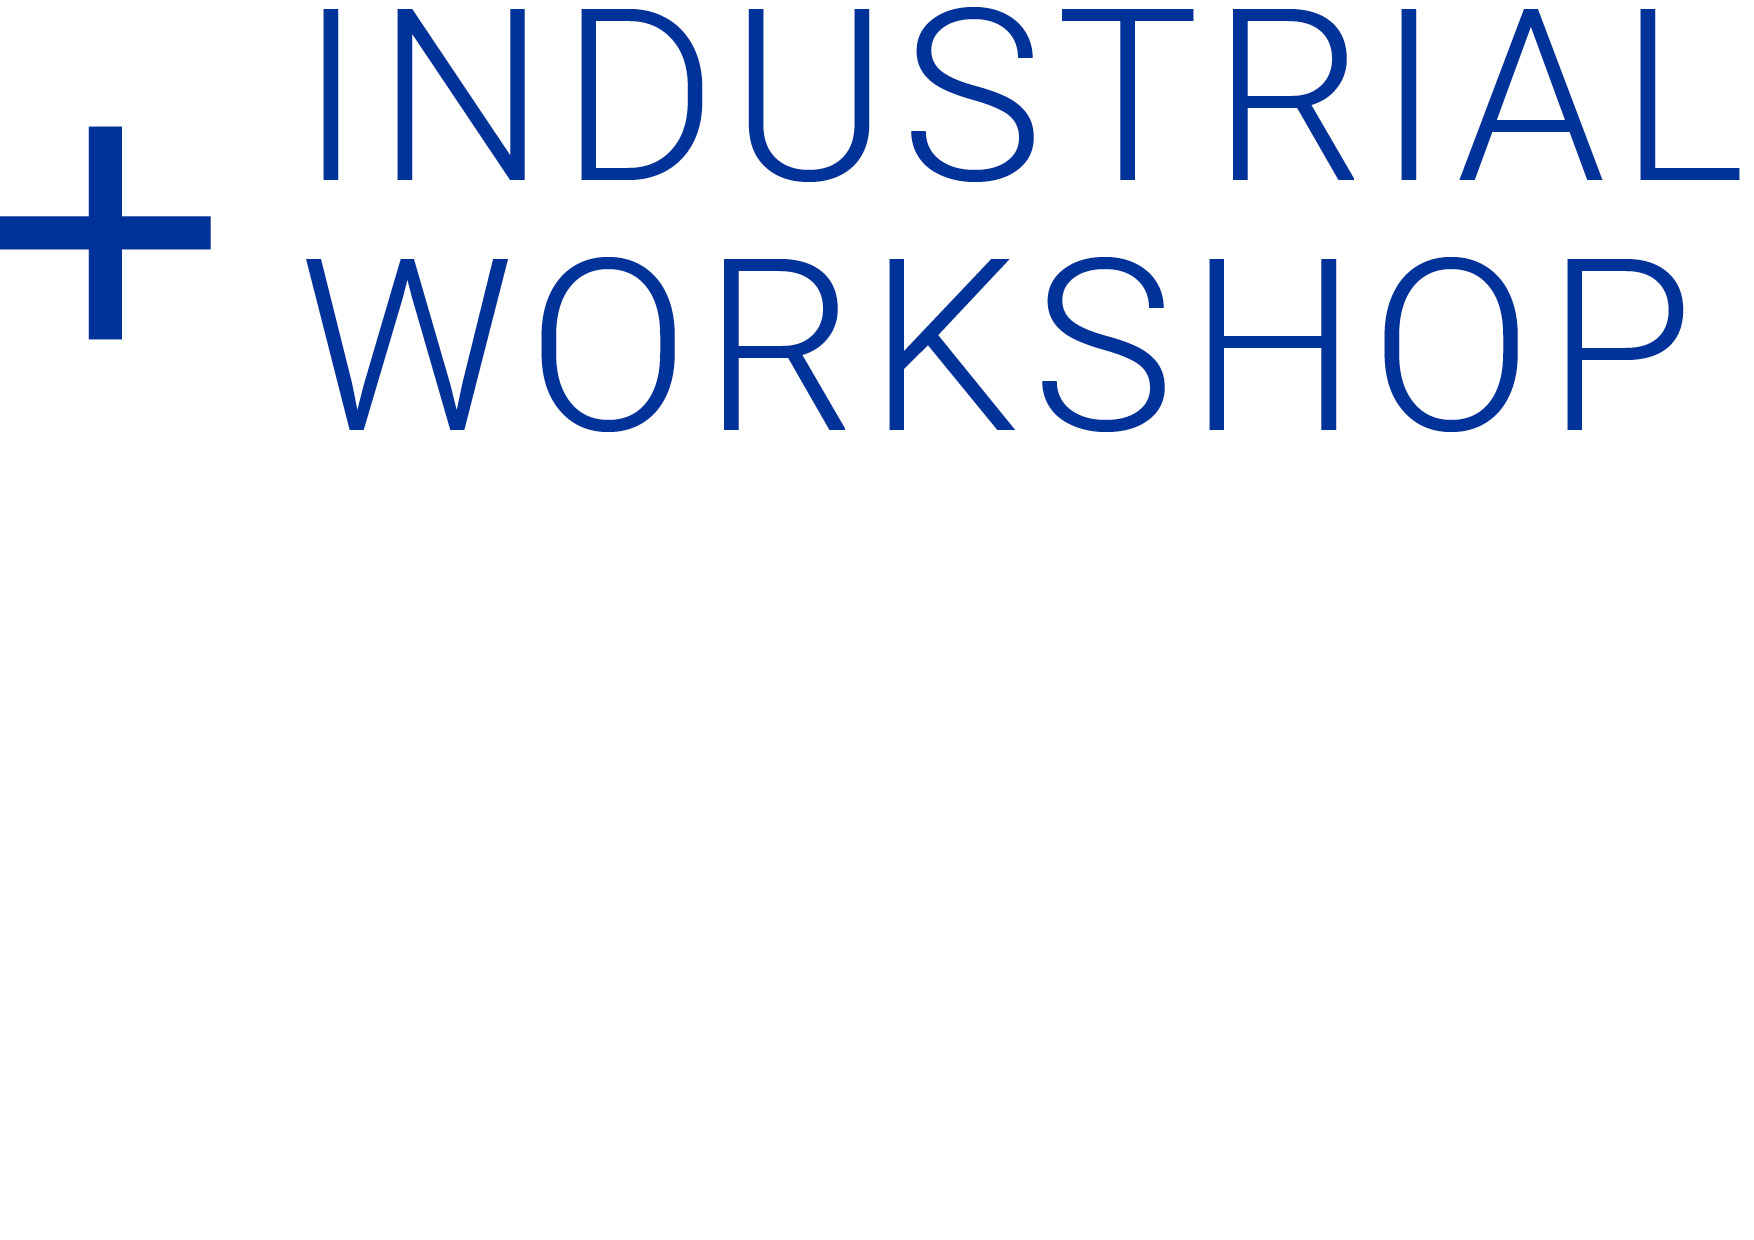 industrial workshop